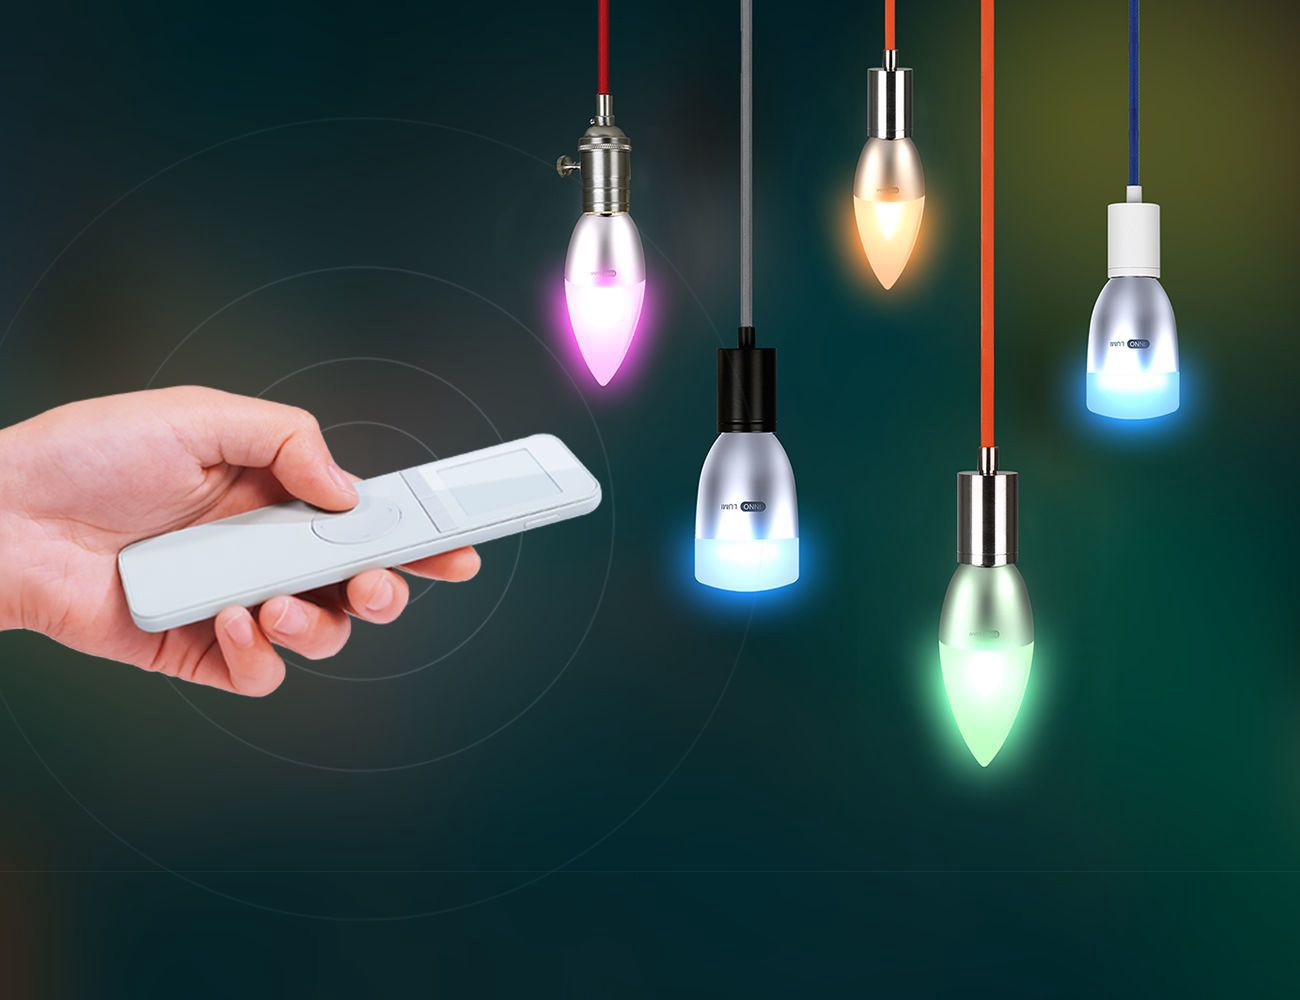 Inno lumi is a suite of smart lighting products providing effortless control of home lighting systems it features an elegantly simple remote control as